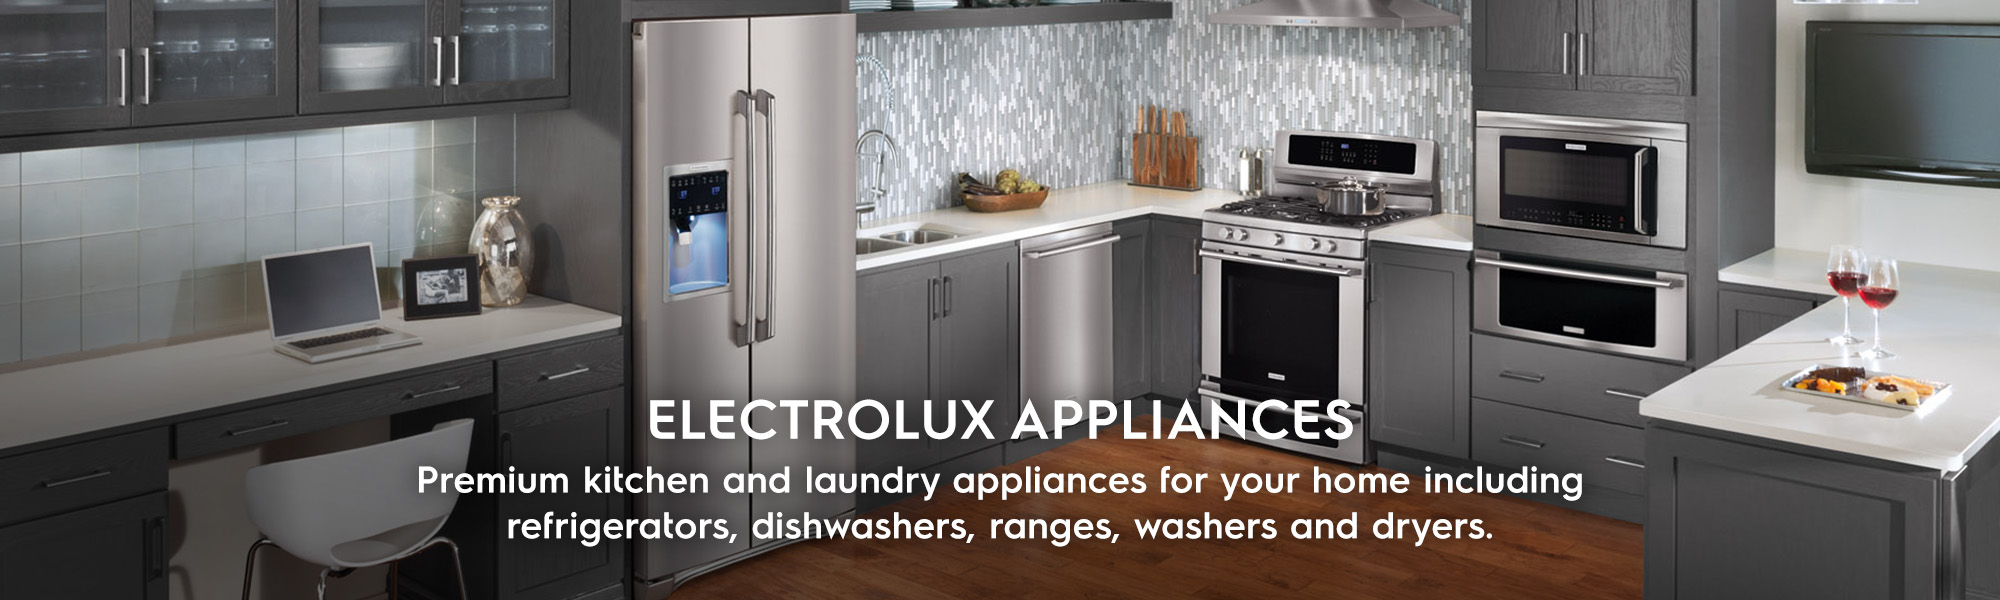 Electrolux Appliances. Electrolux Kitchen